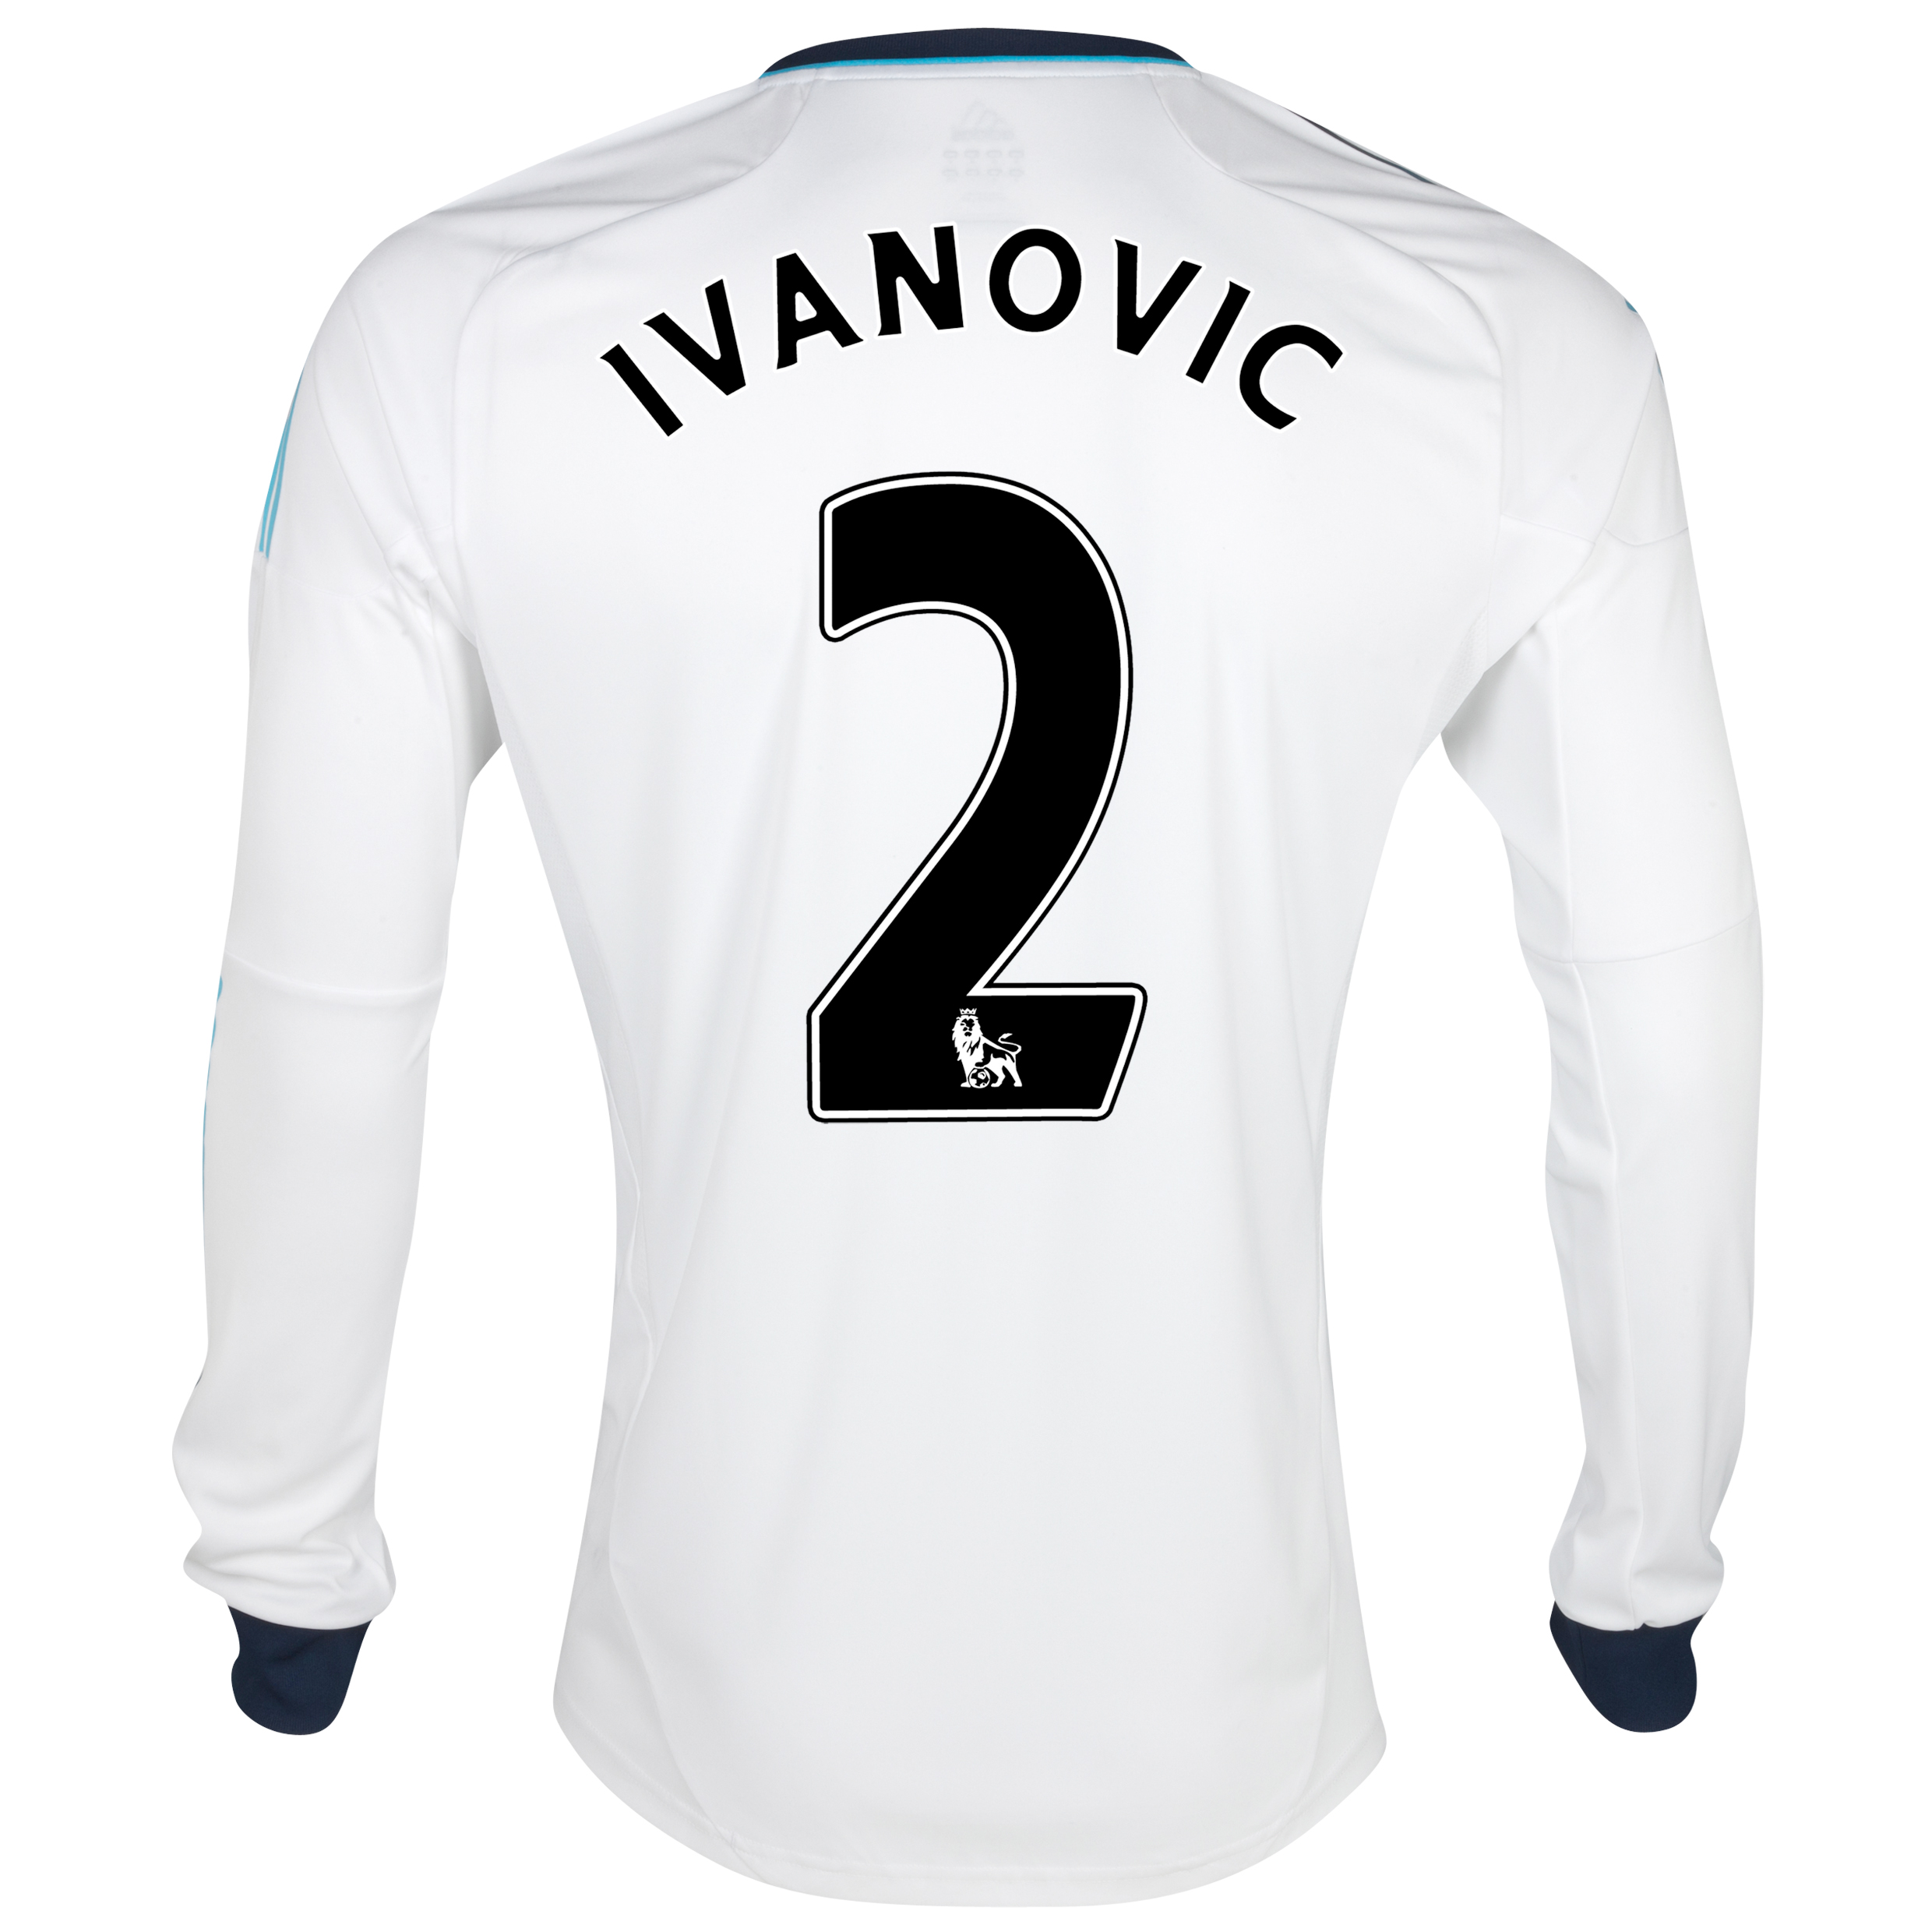 Chelsea Away Shirt 2012/13 - Long Sleeved  - Youths with Ivanovic 2 printing